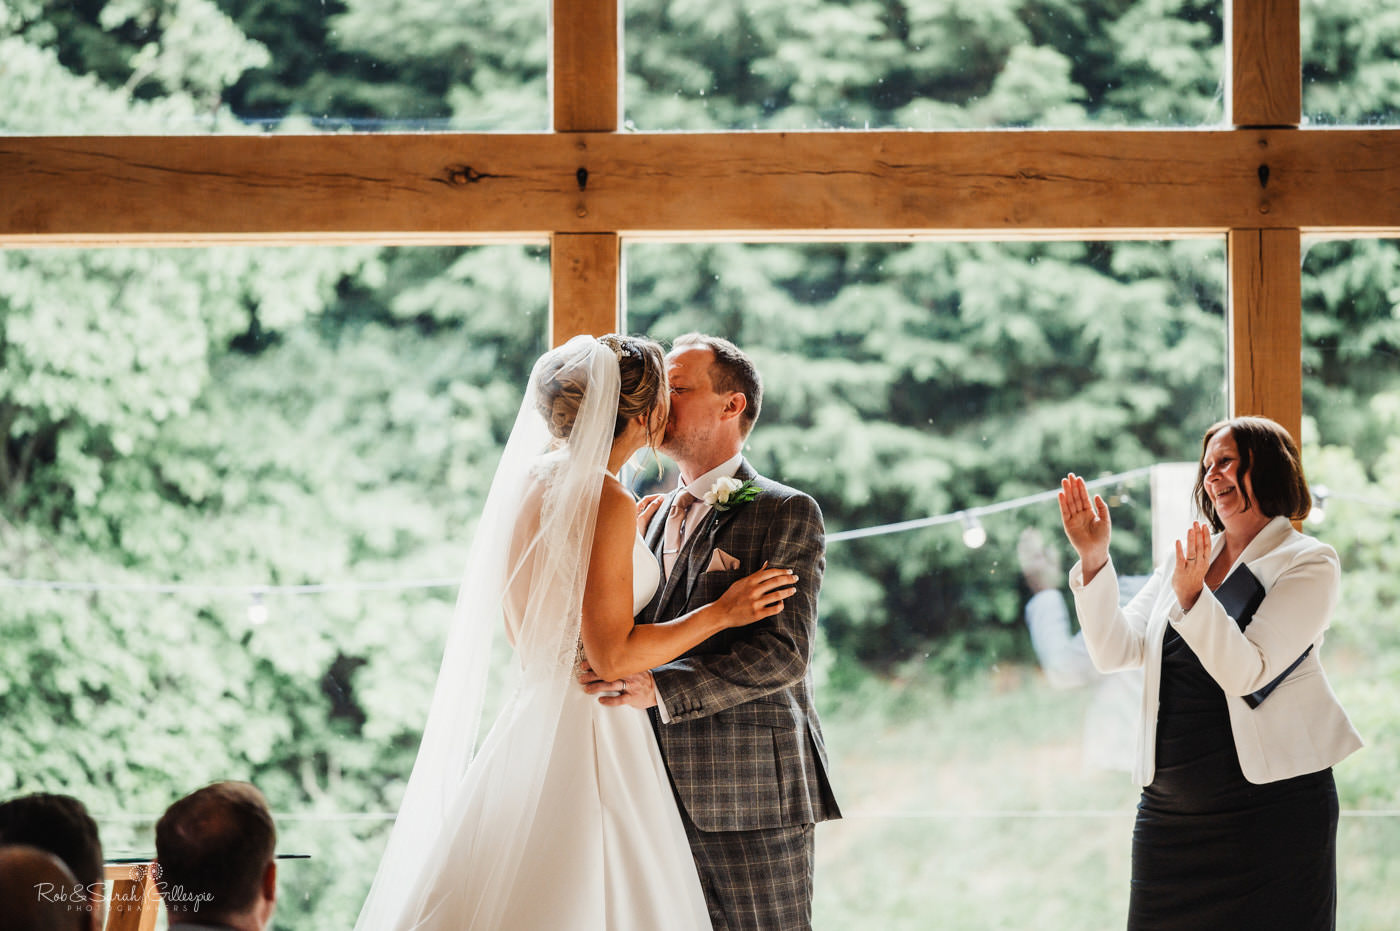 Bride and groom first kiss during wedding ceremony at The Mill Barns